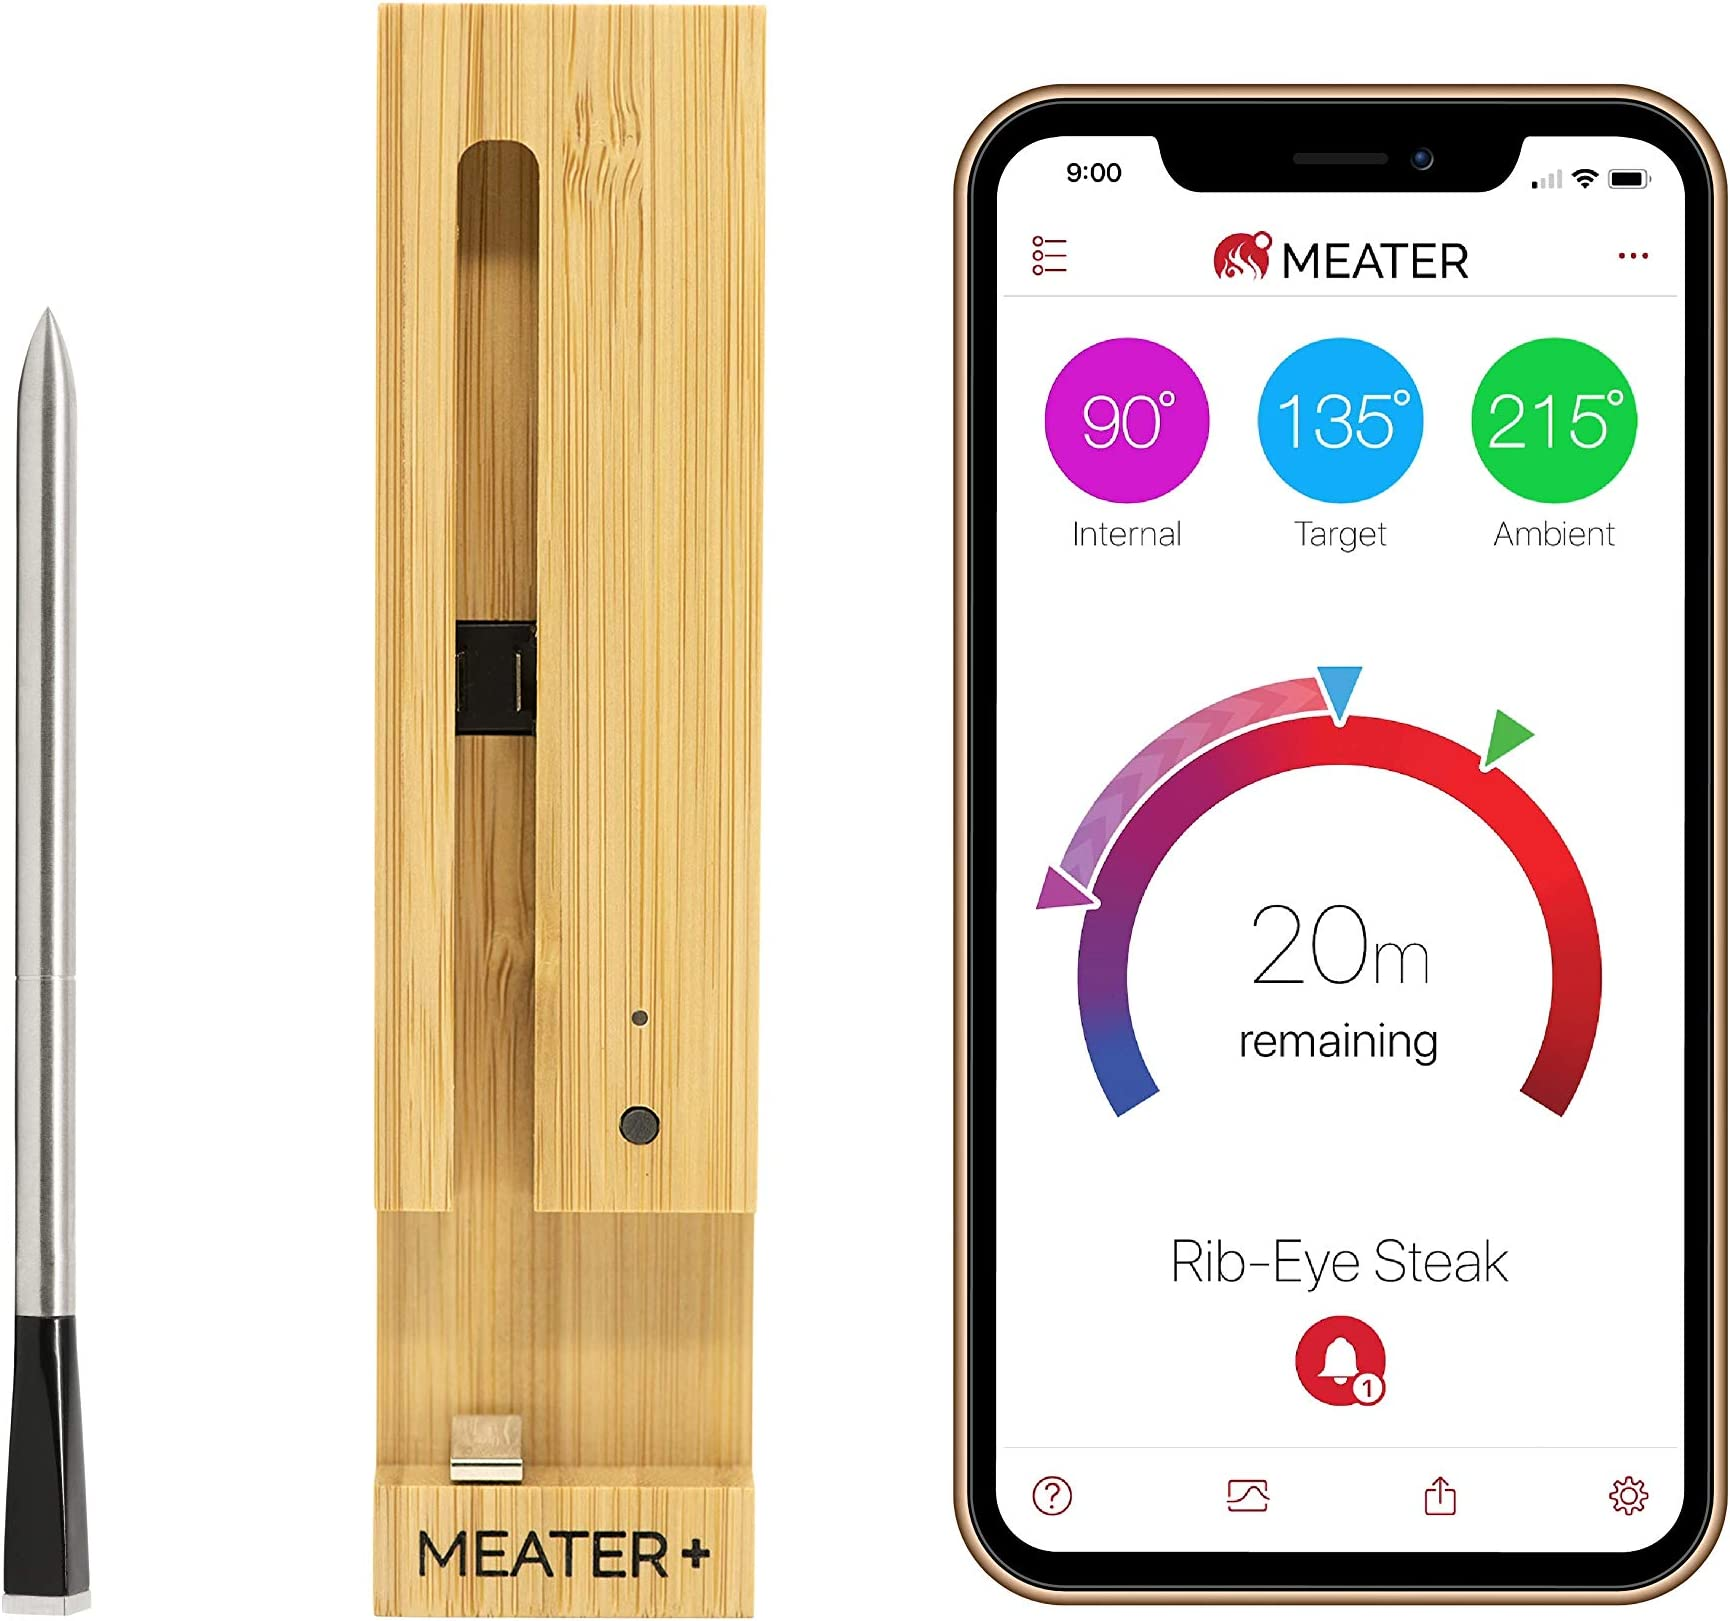 MEATER Plus | 165ft Long Range Smart Wireless Meat Thermometer with Bluetooth for The Oven, Grill, Kitchen, BBQ, Smoker, Sous Vide, Rotisserie